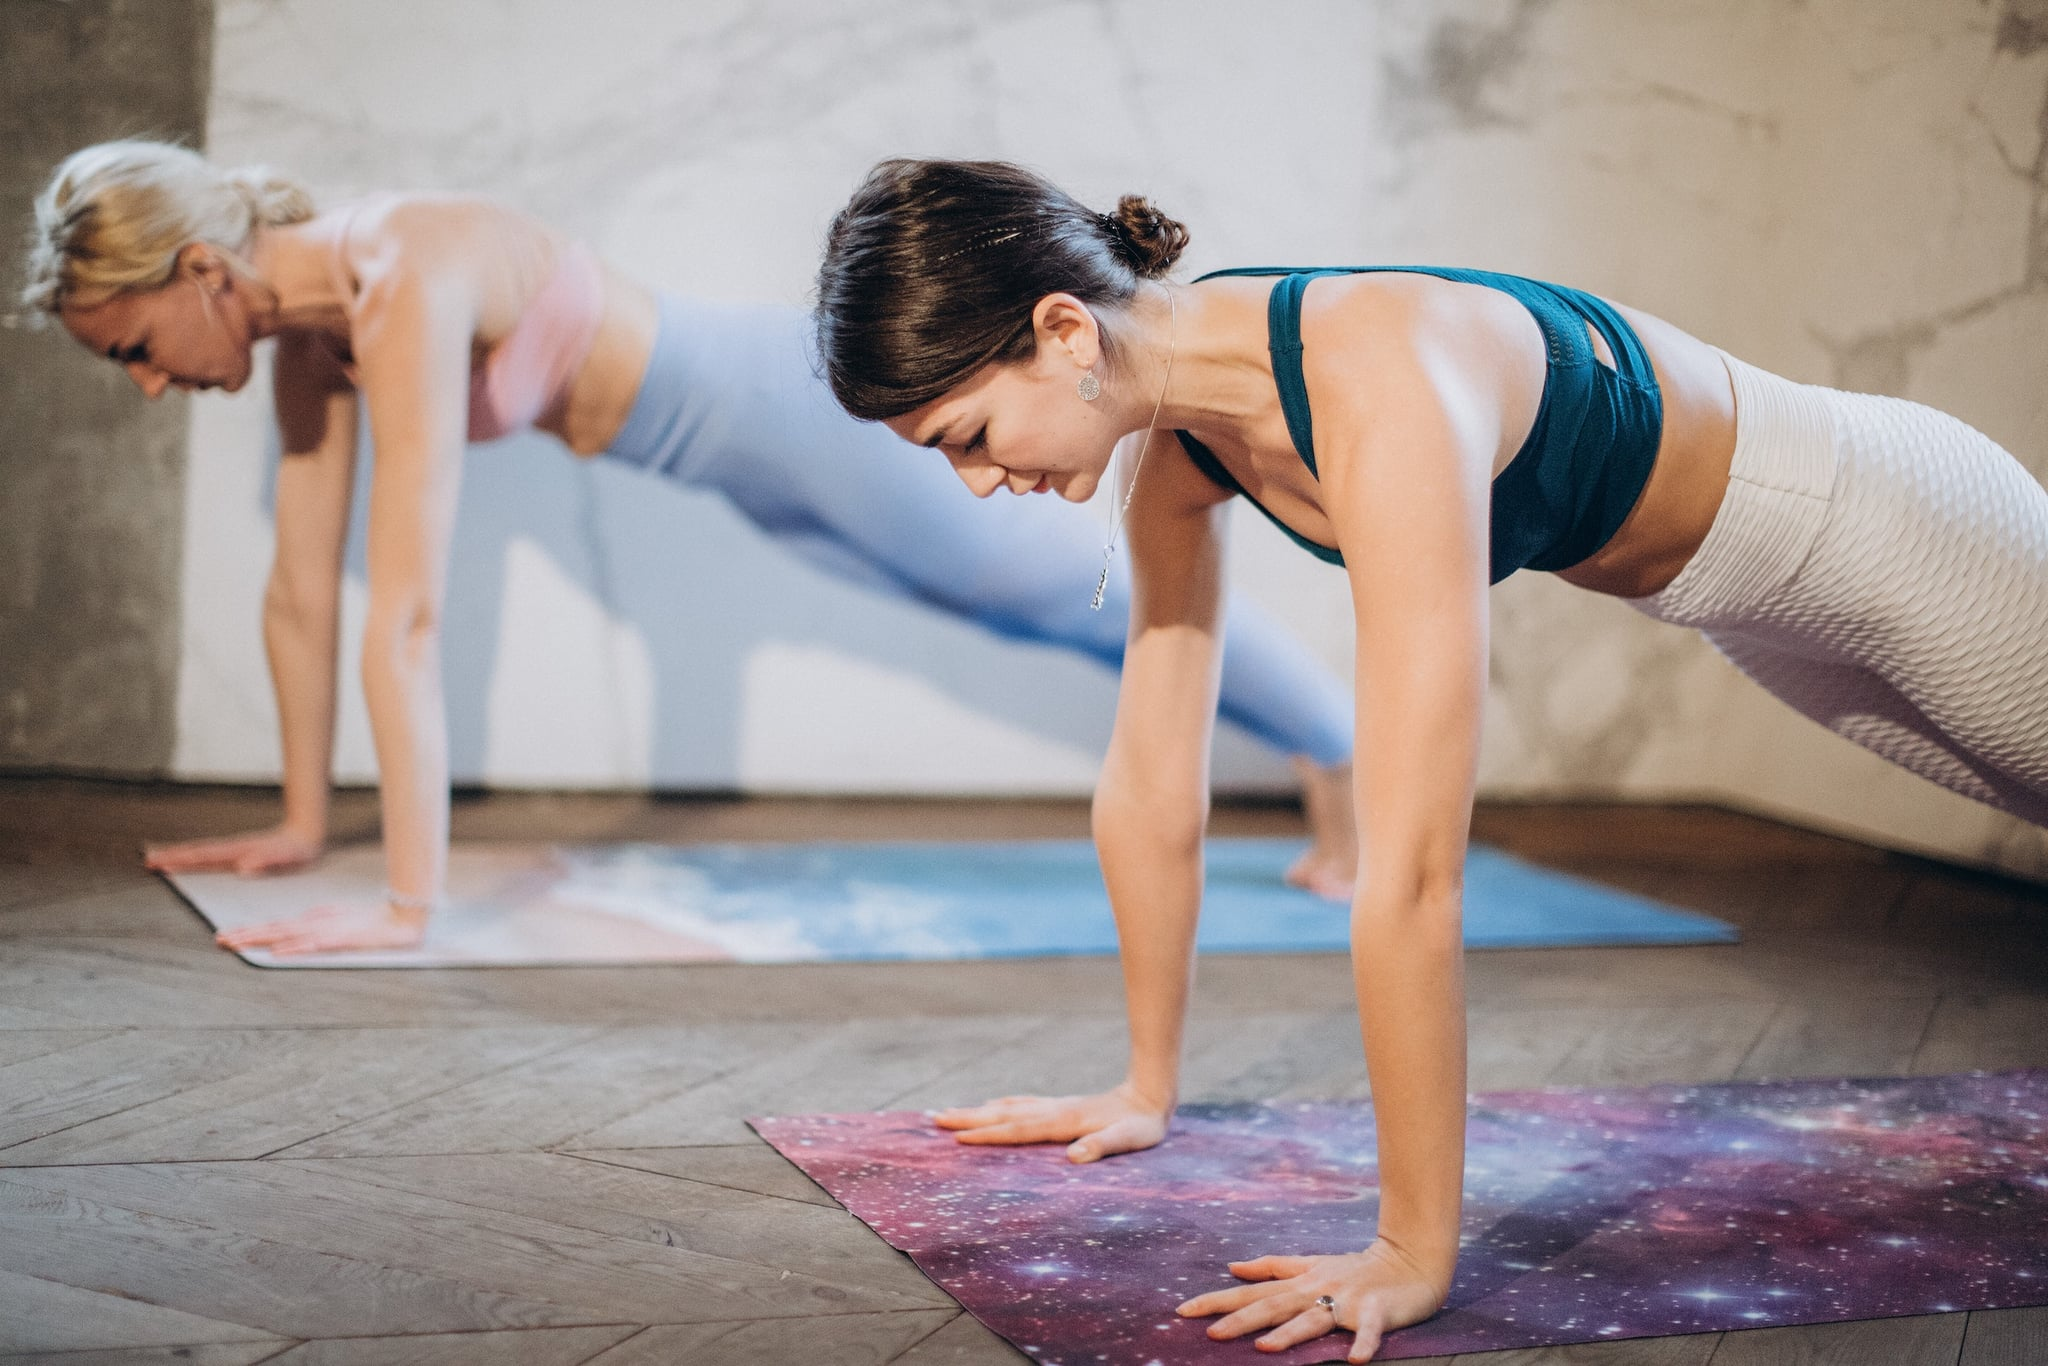 Make These Simple Plank Corrections and Say Goodbye to Hand and Wrist Pain